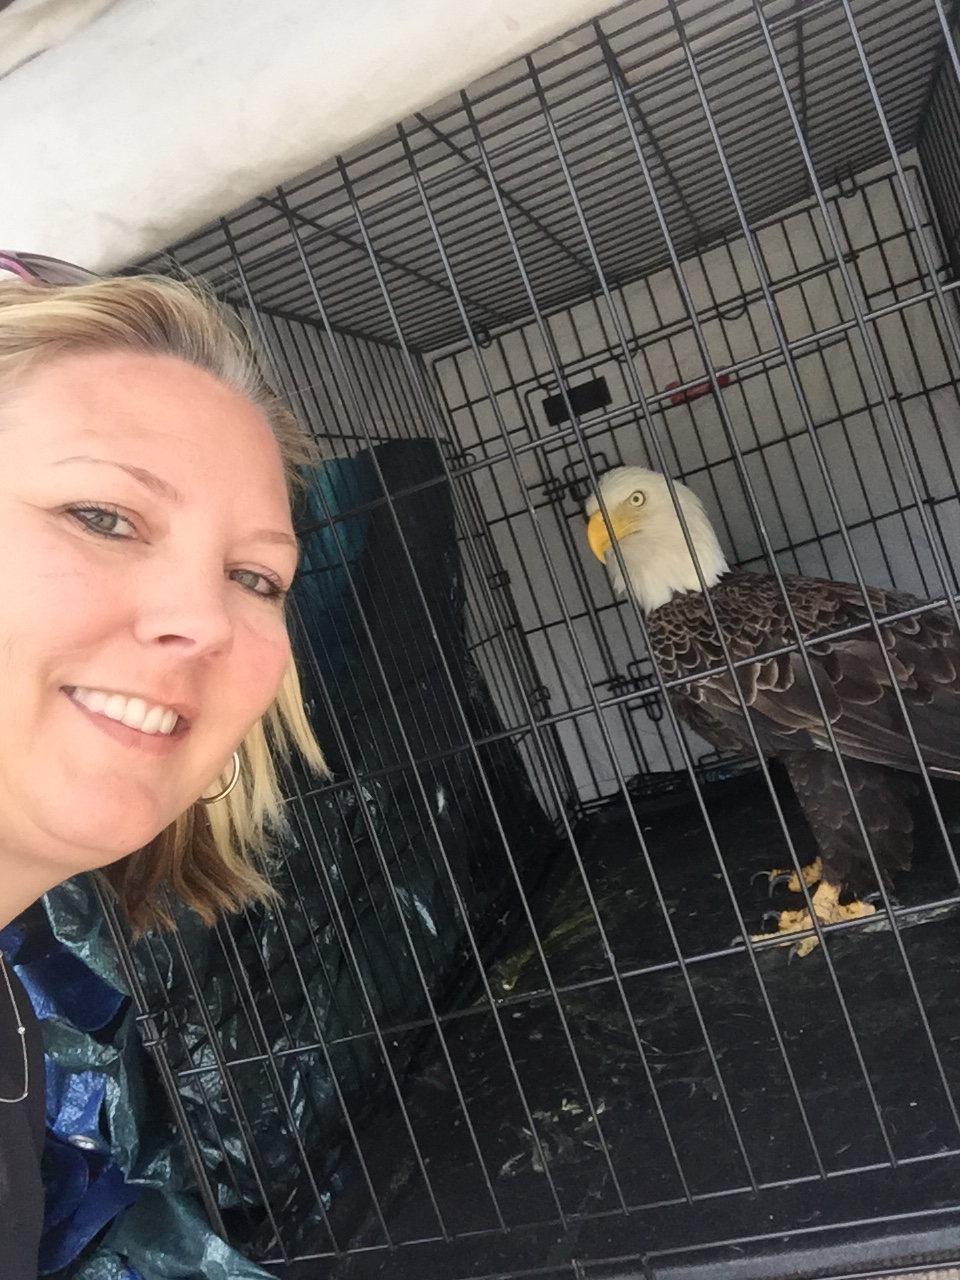 West poses for a selfie with the eagle after it was freed.